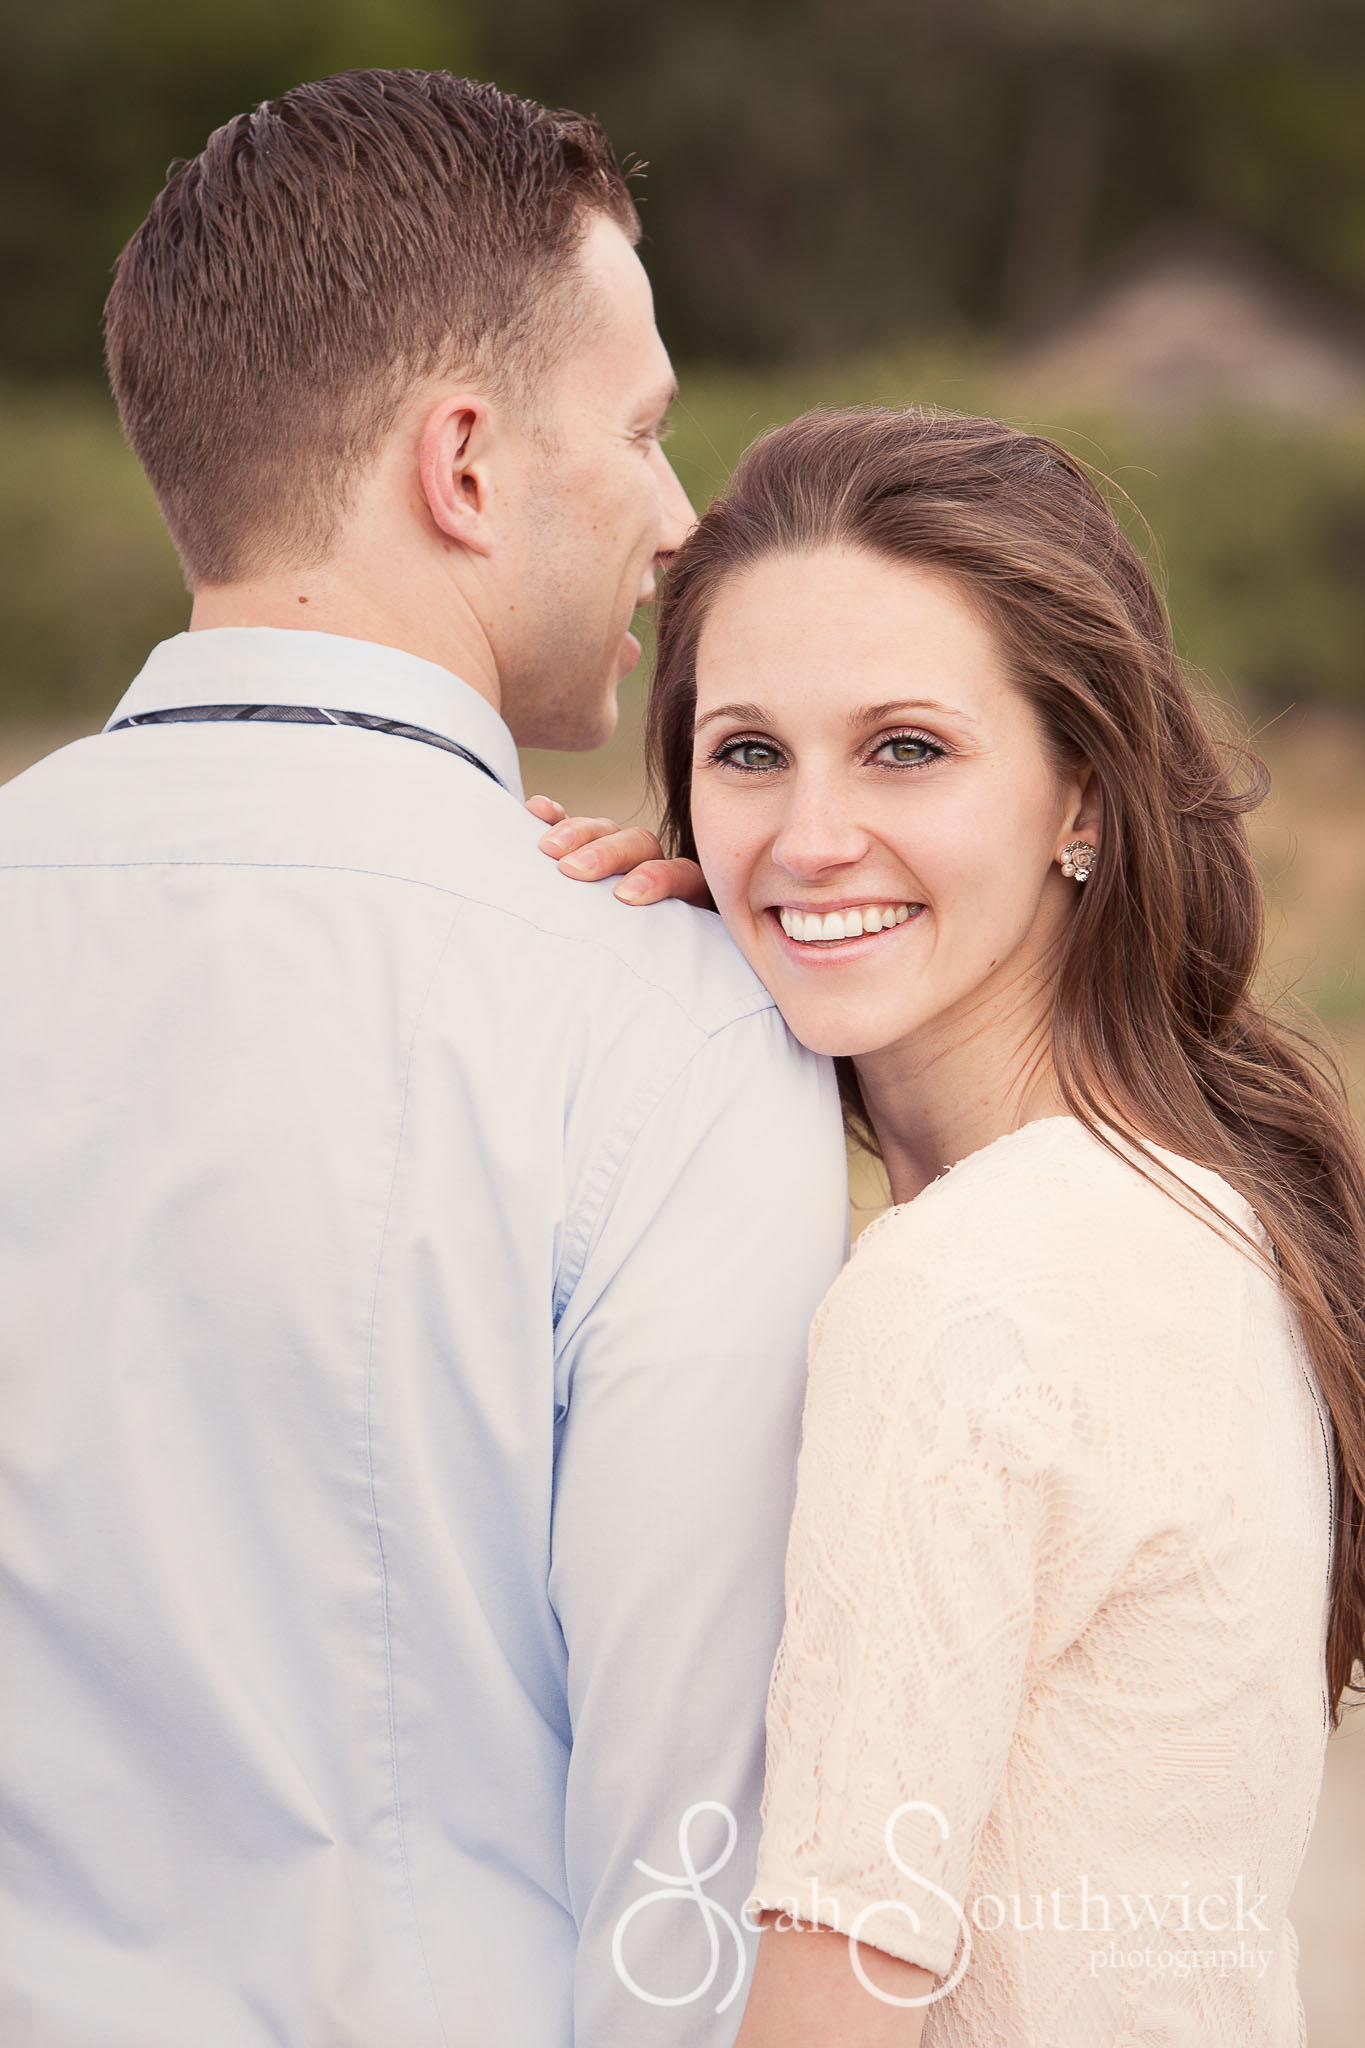 Engagement Photography Leah Southwick Photography-8.jpg